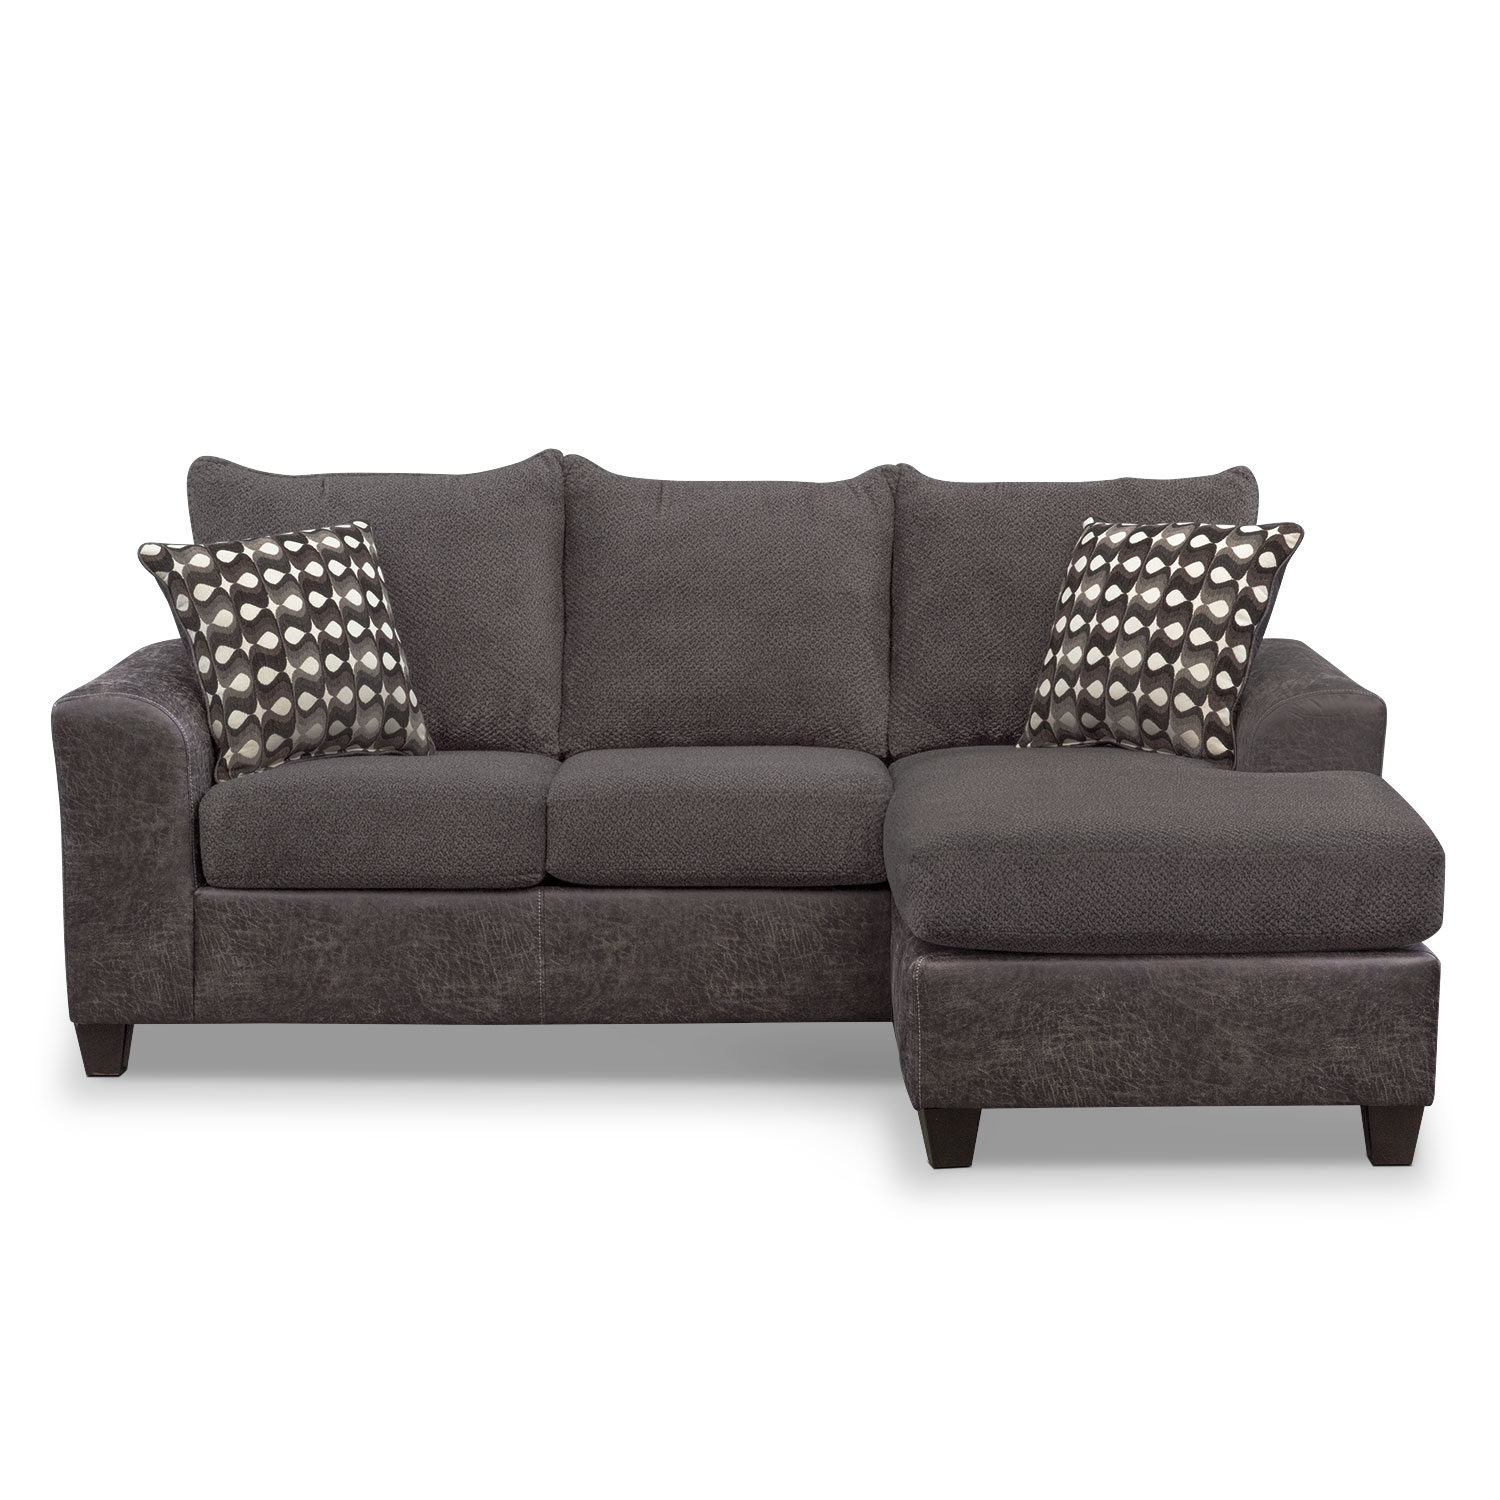 furniture wolf with and by chaise sectional sofa products lounge klaussner gardiner reversible